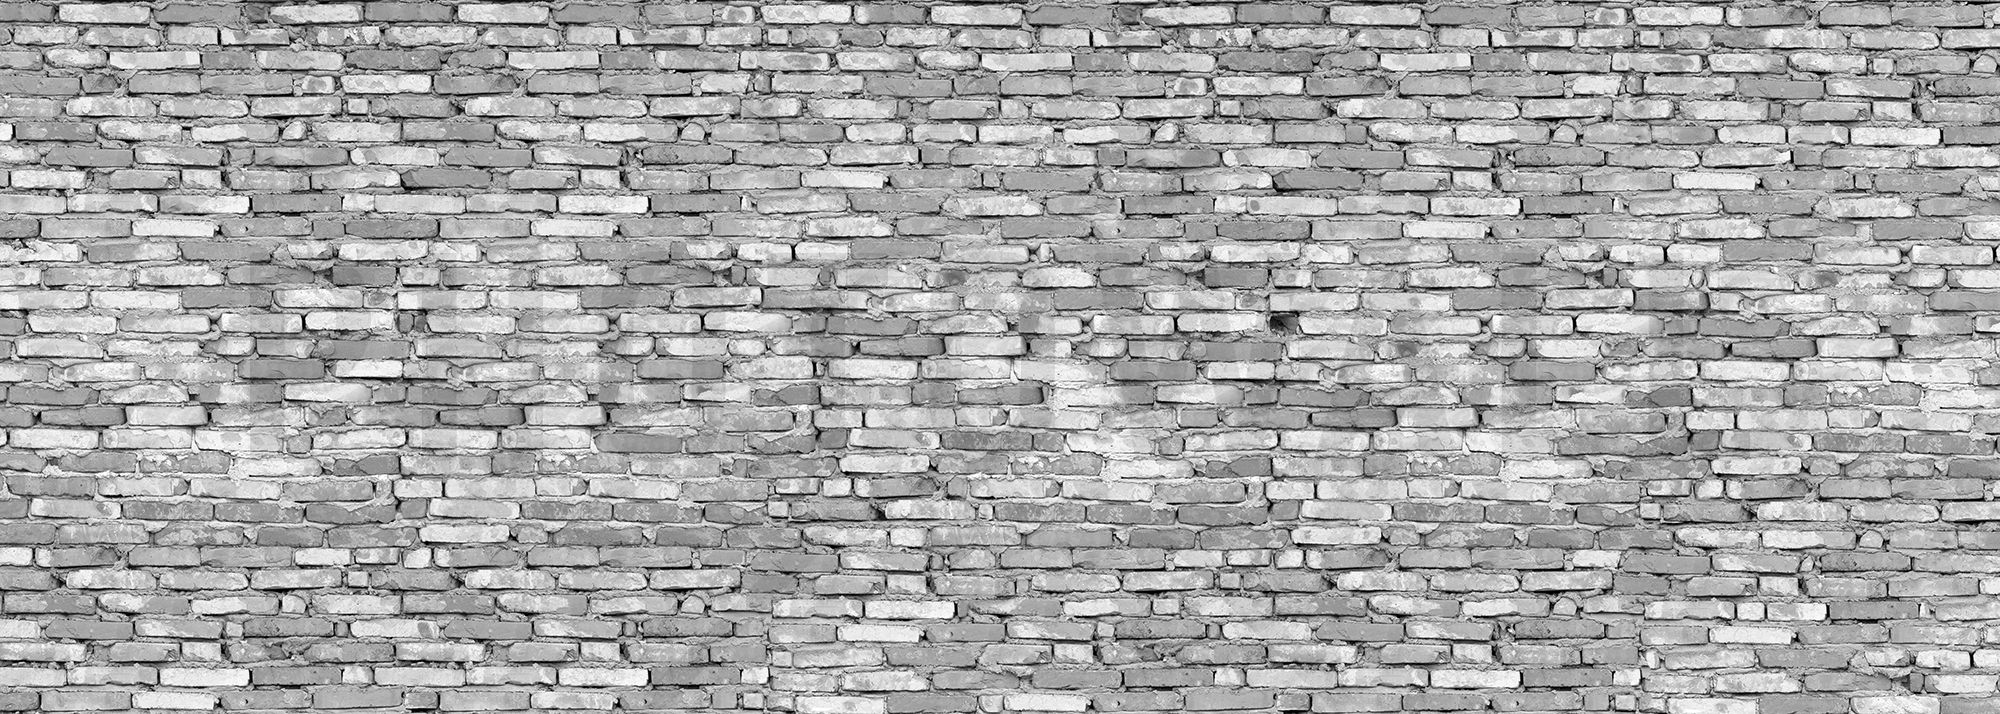 Fototapete Mauerwerk Old Brickwall Grey Fototapeten Tapeten Photowall